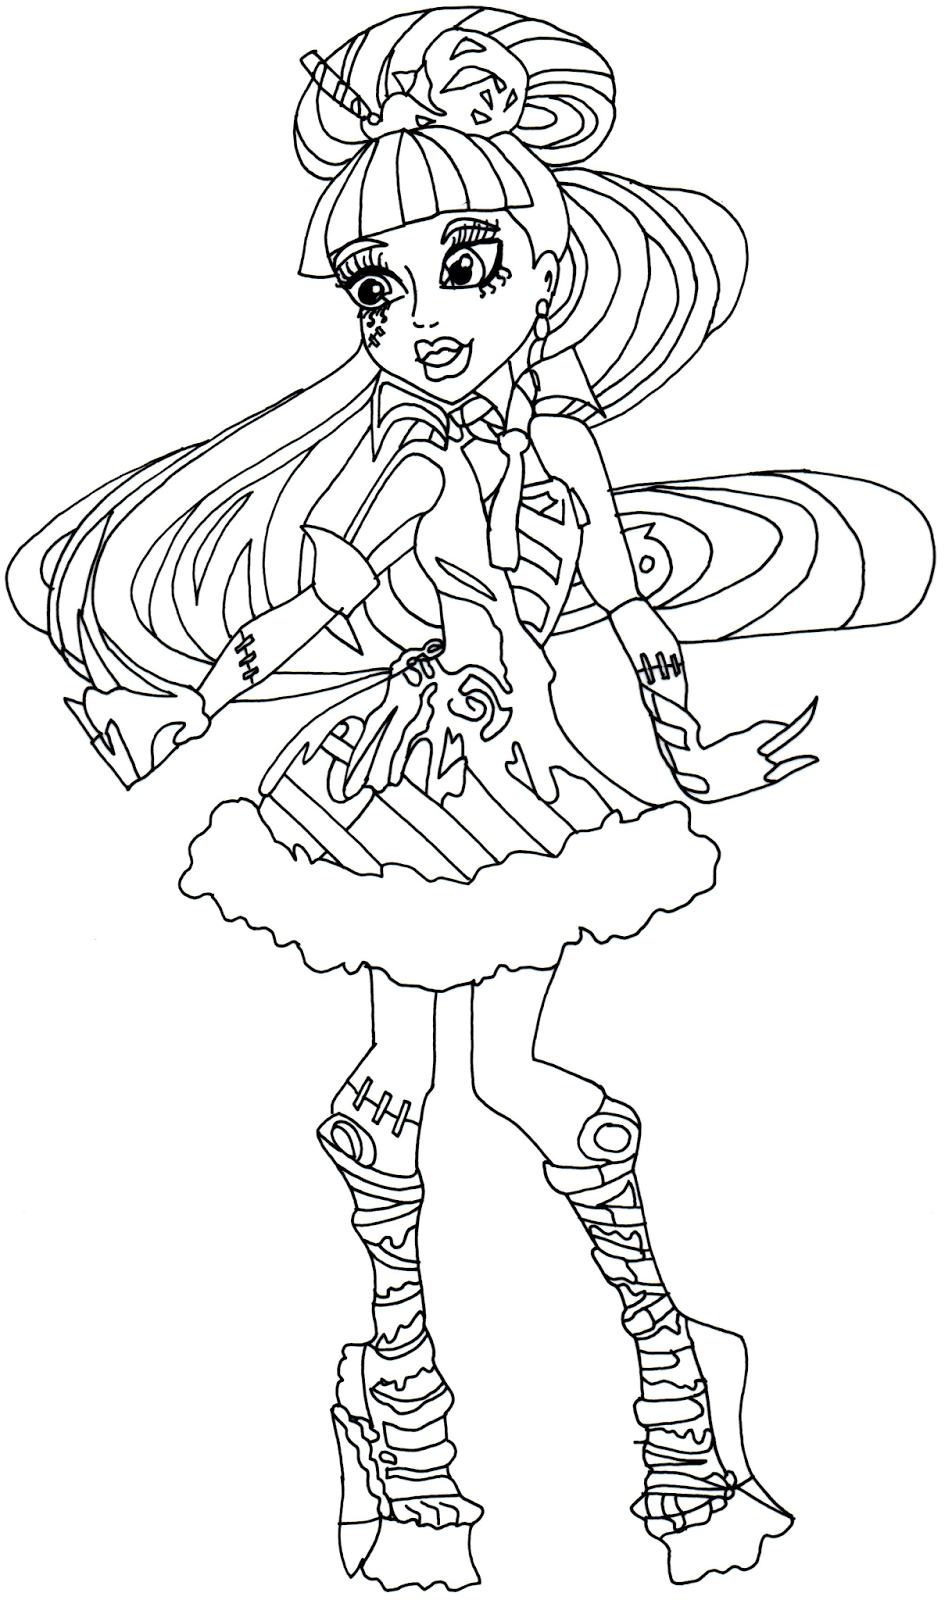 Monster High Free Printables Gallery Of Lagoona Blue Monster High Coloring Pages for Kids Printable Free Printable